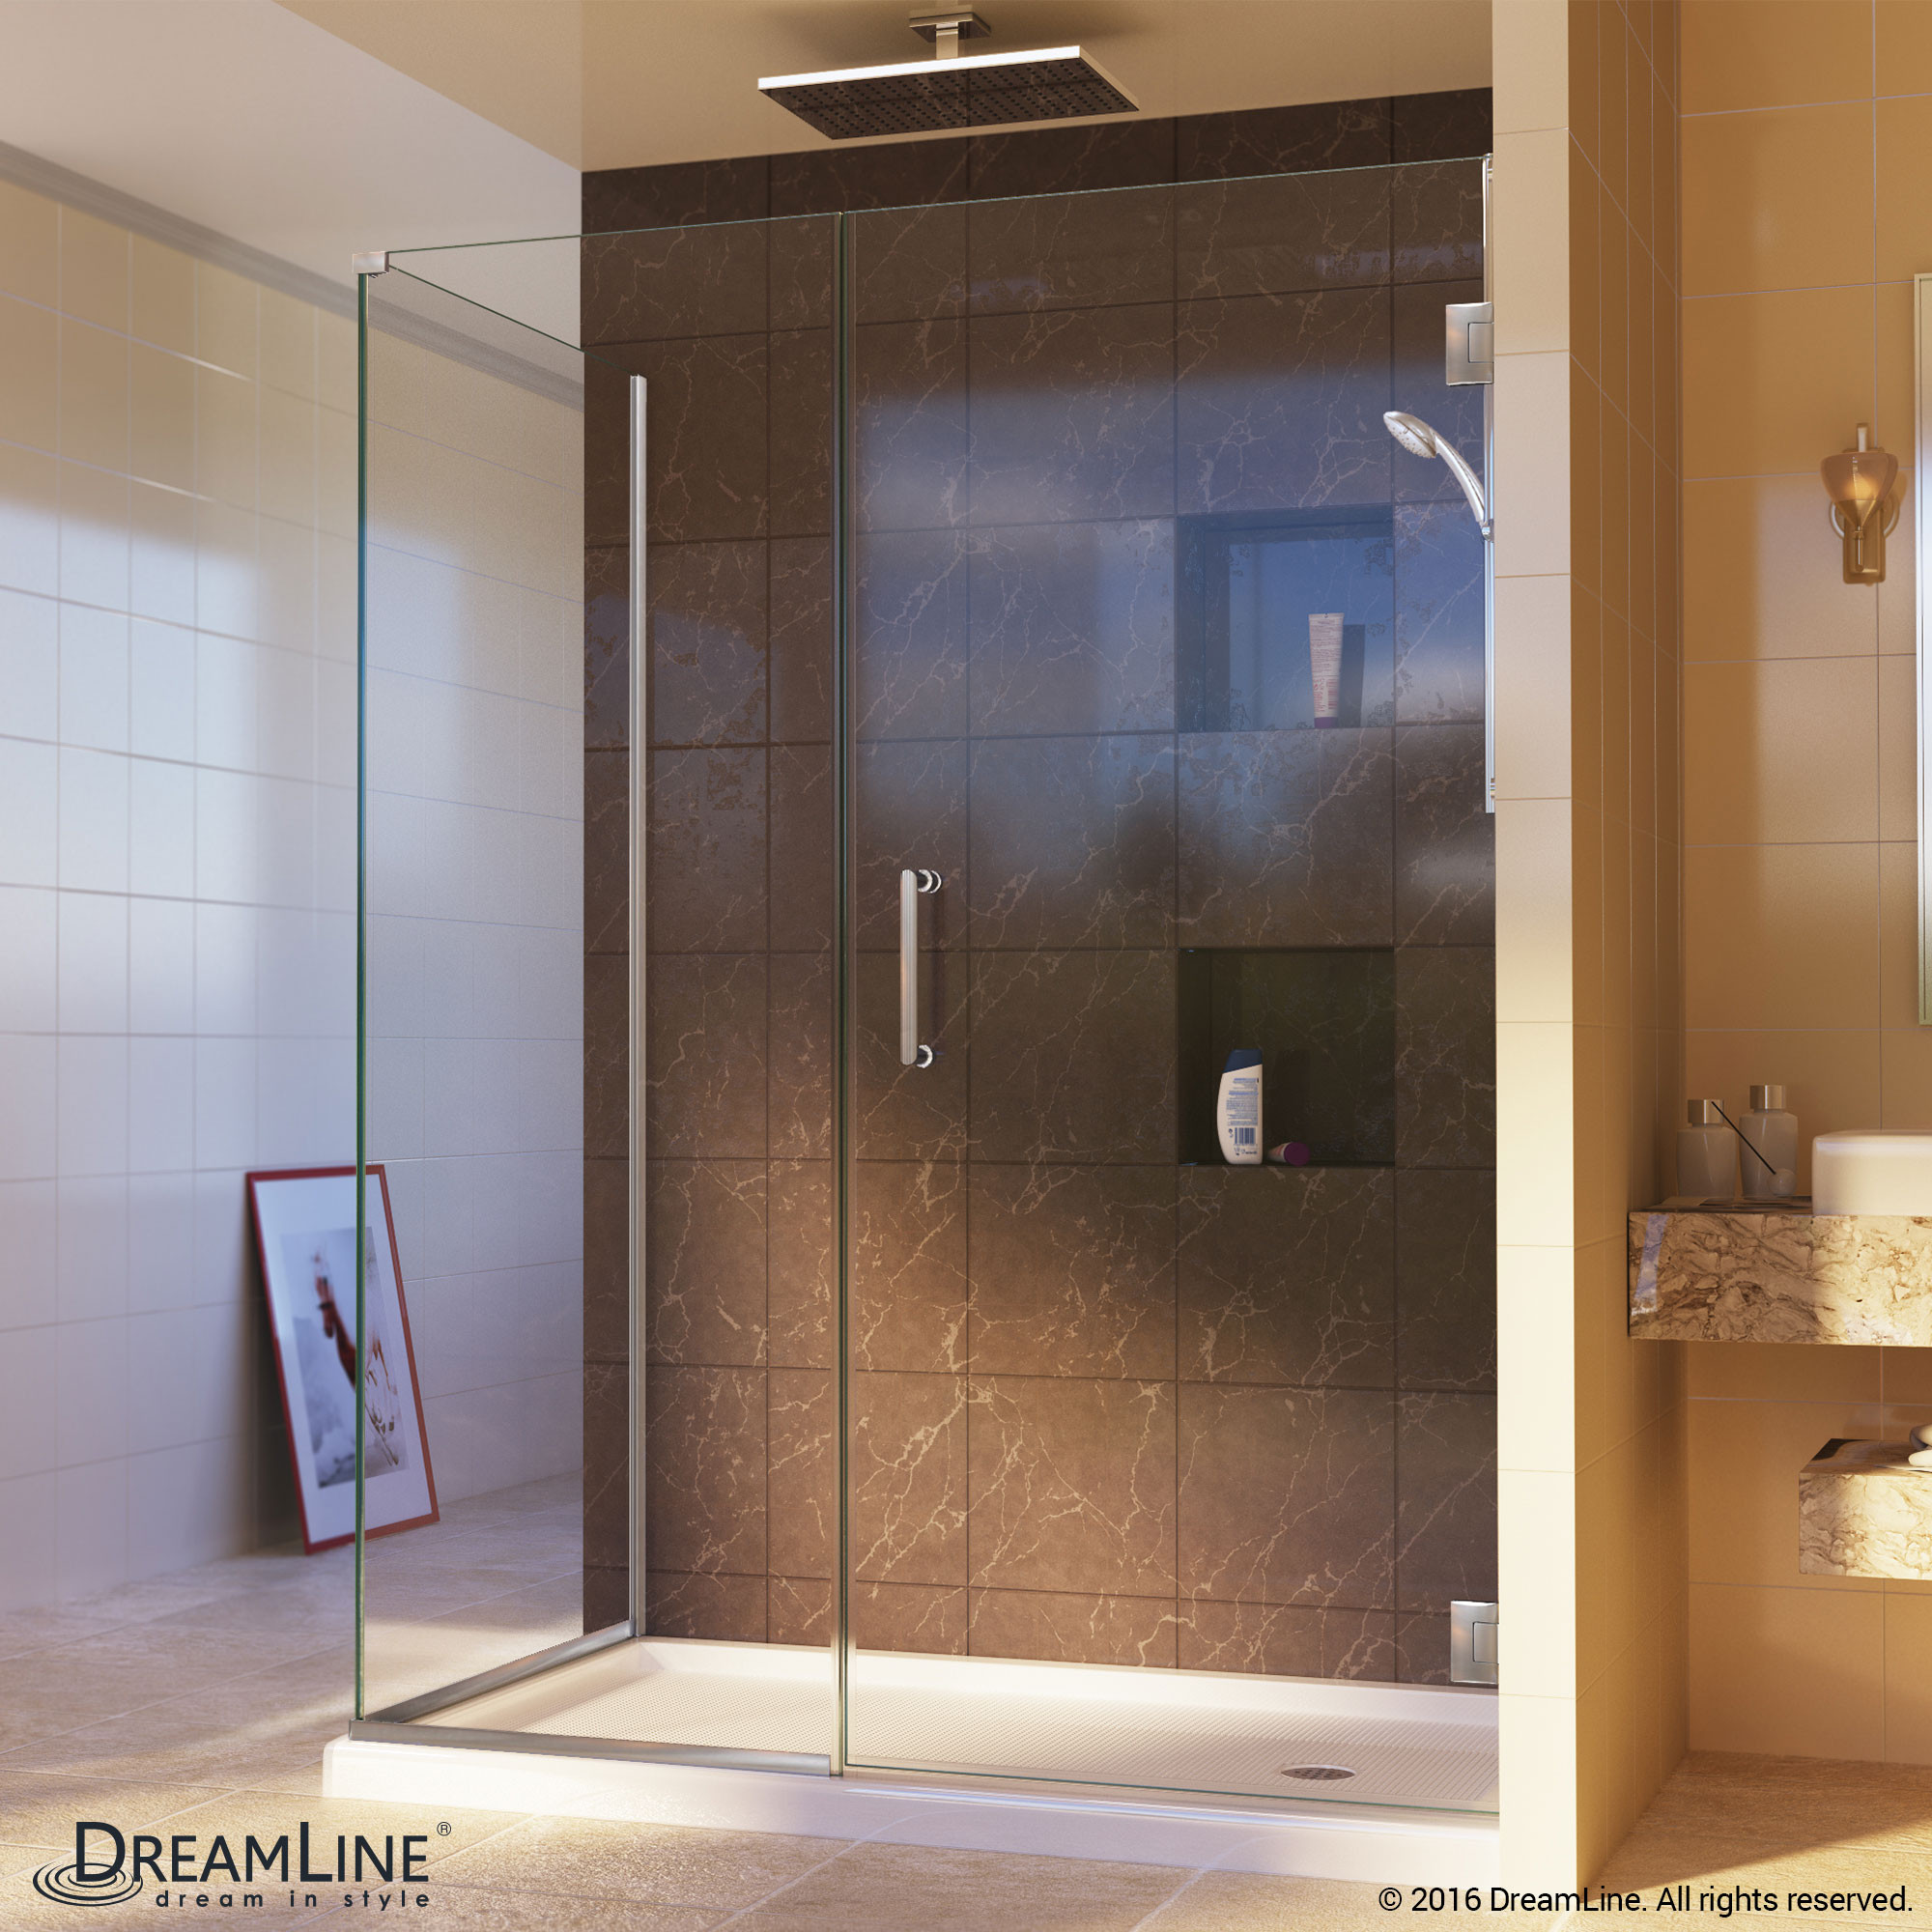 DreamLine SHEN-24595300-04 Unidoor Plus Hinged Shower Enclosure In Brushed Nickel Finish Hardware